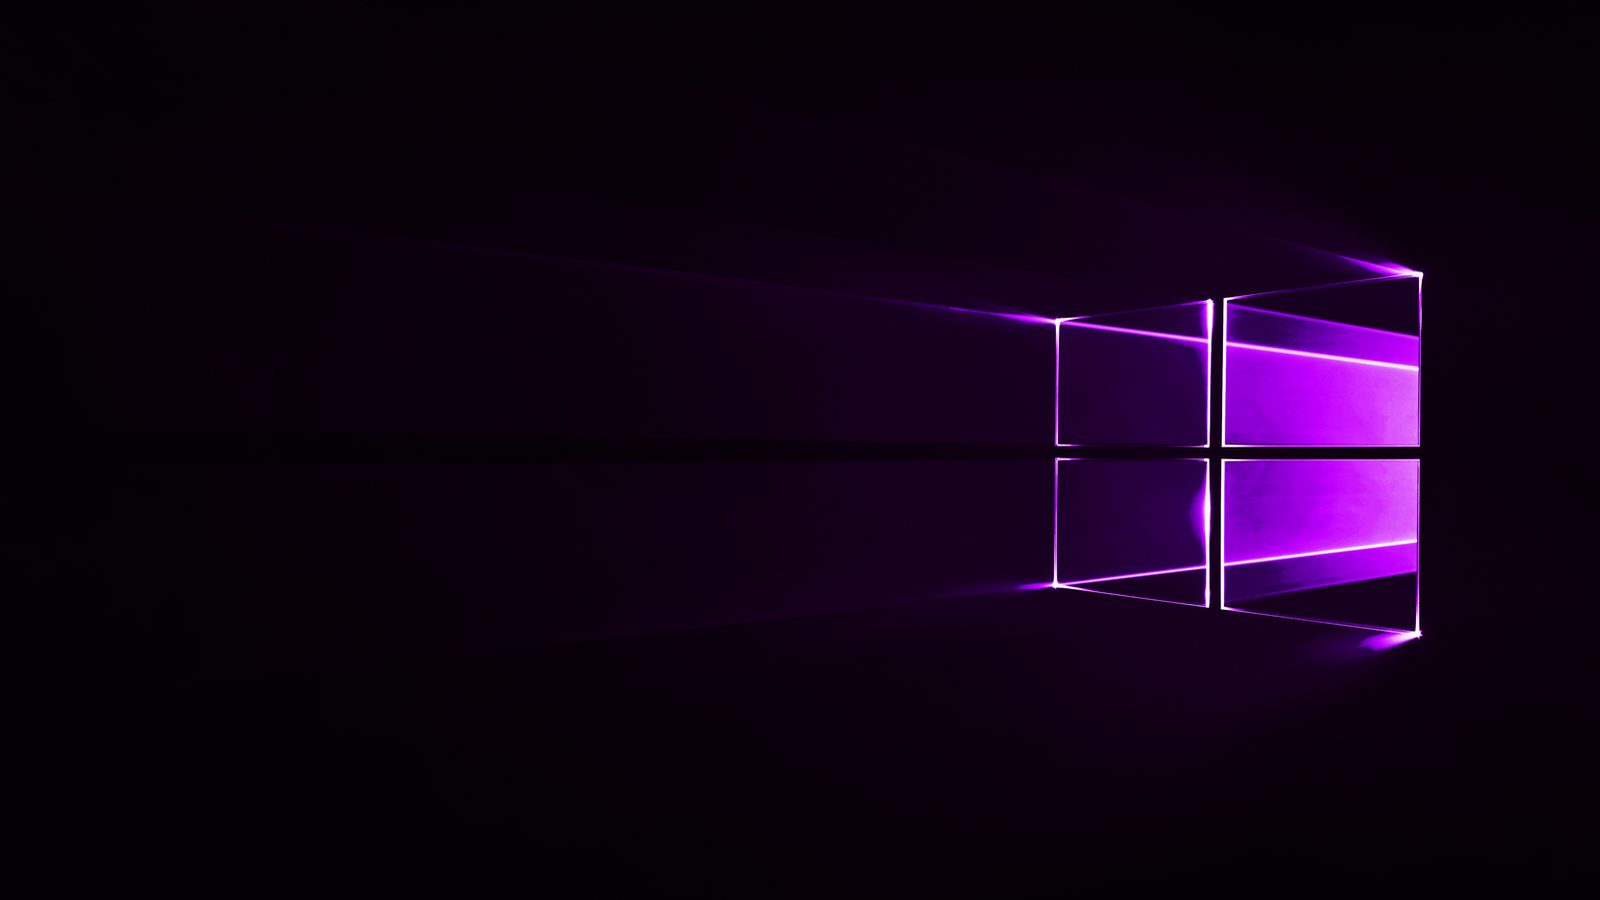 pc 3d live wallpapers free download windows 7